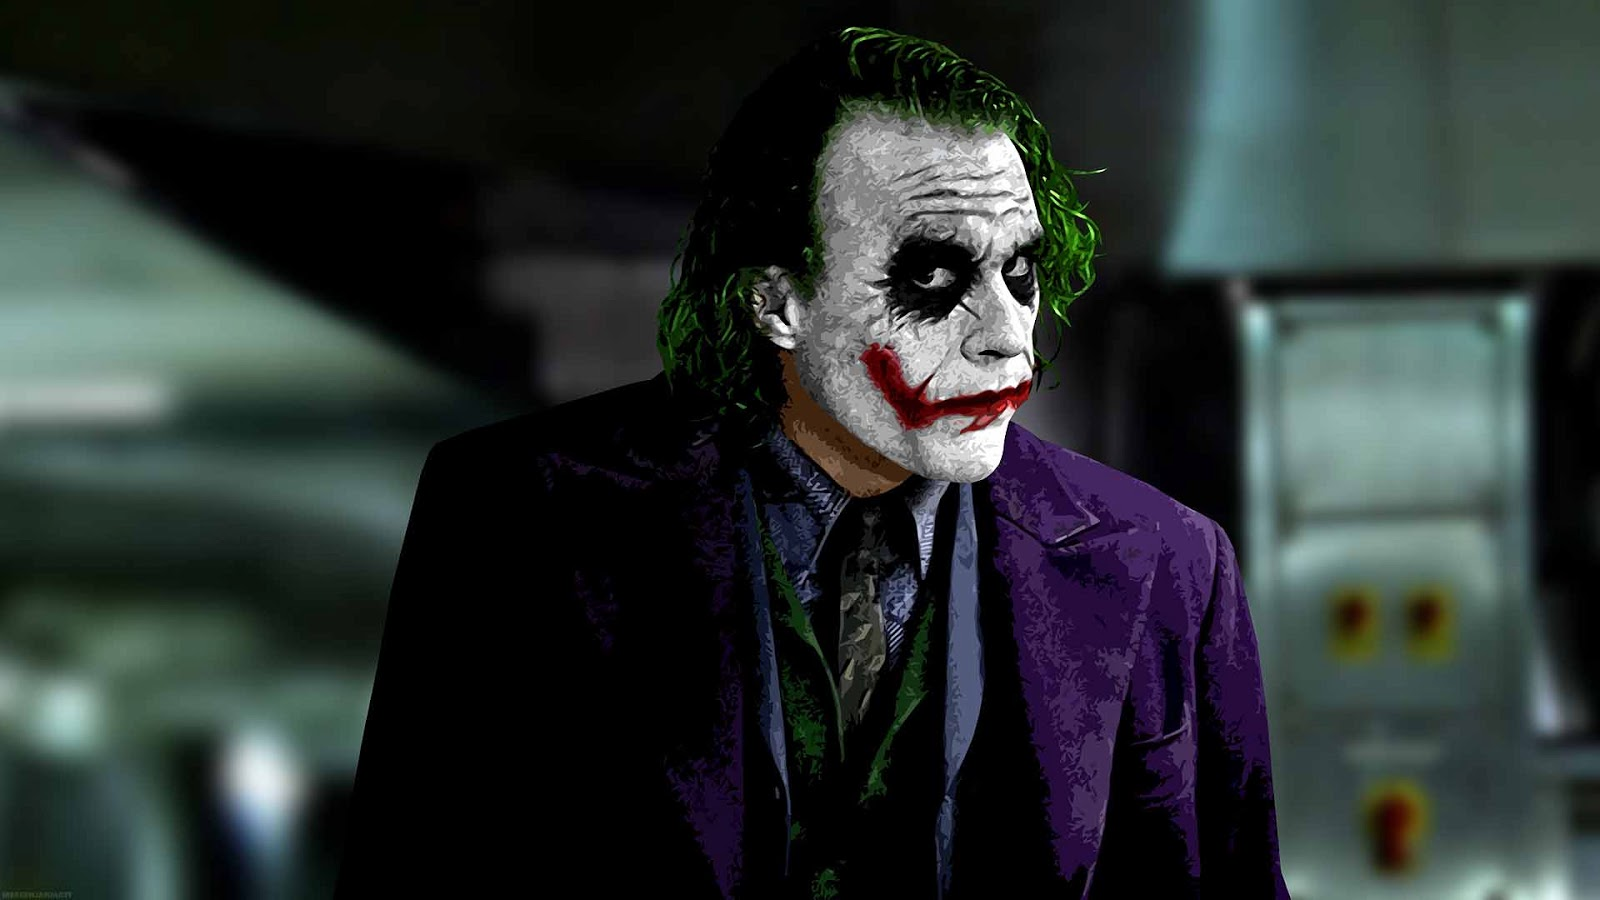 blogthis share to twitter share to facebook labels joker joker desktop 1600x900